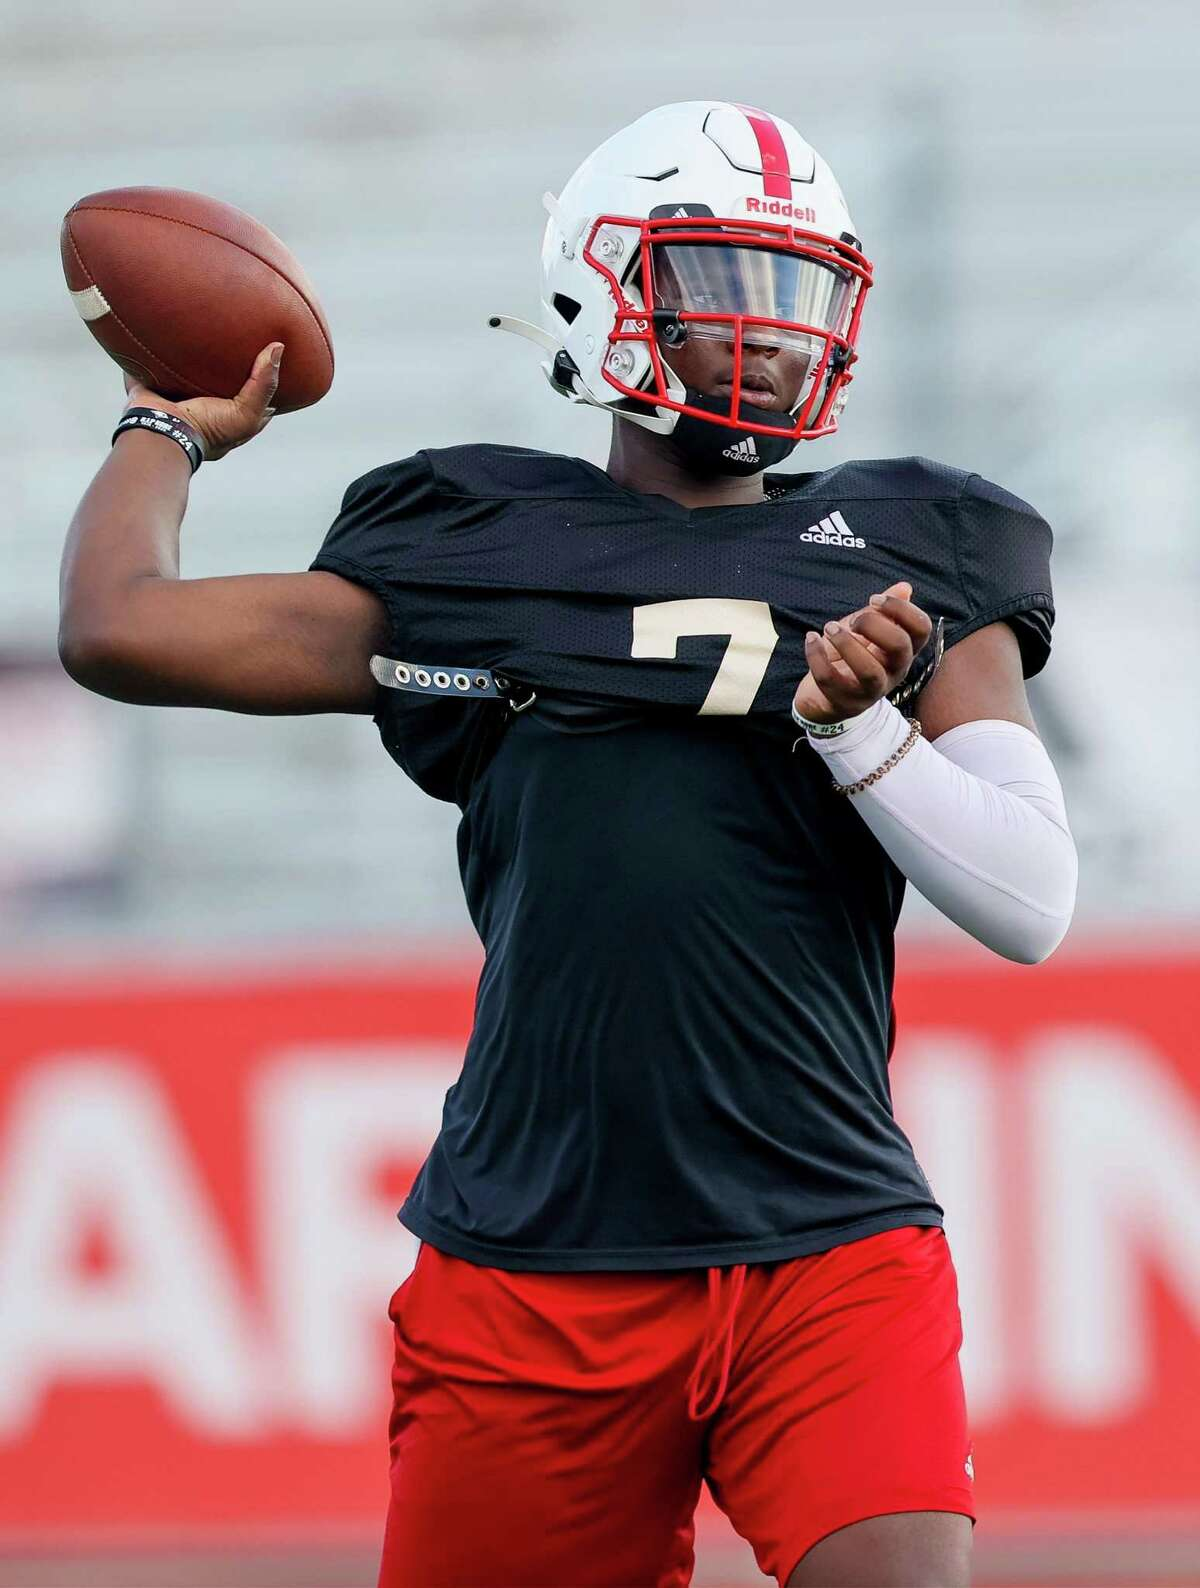 UIW quarterback Cameron Ward looks to throw during a morning practice at Gayle and Tom Benson Stadium on Friday, Aug. 13, 2021.